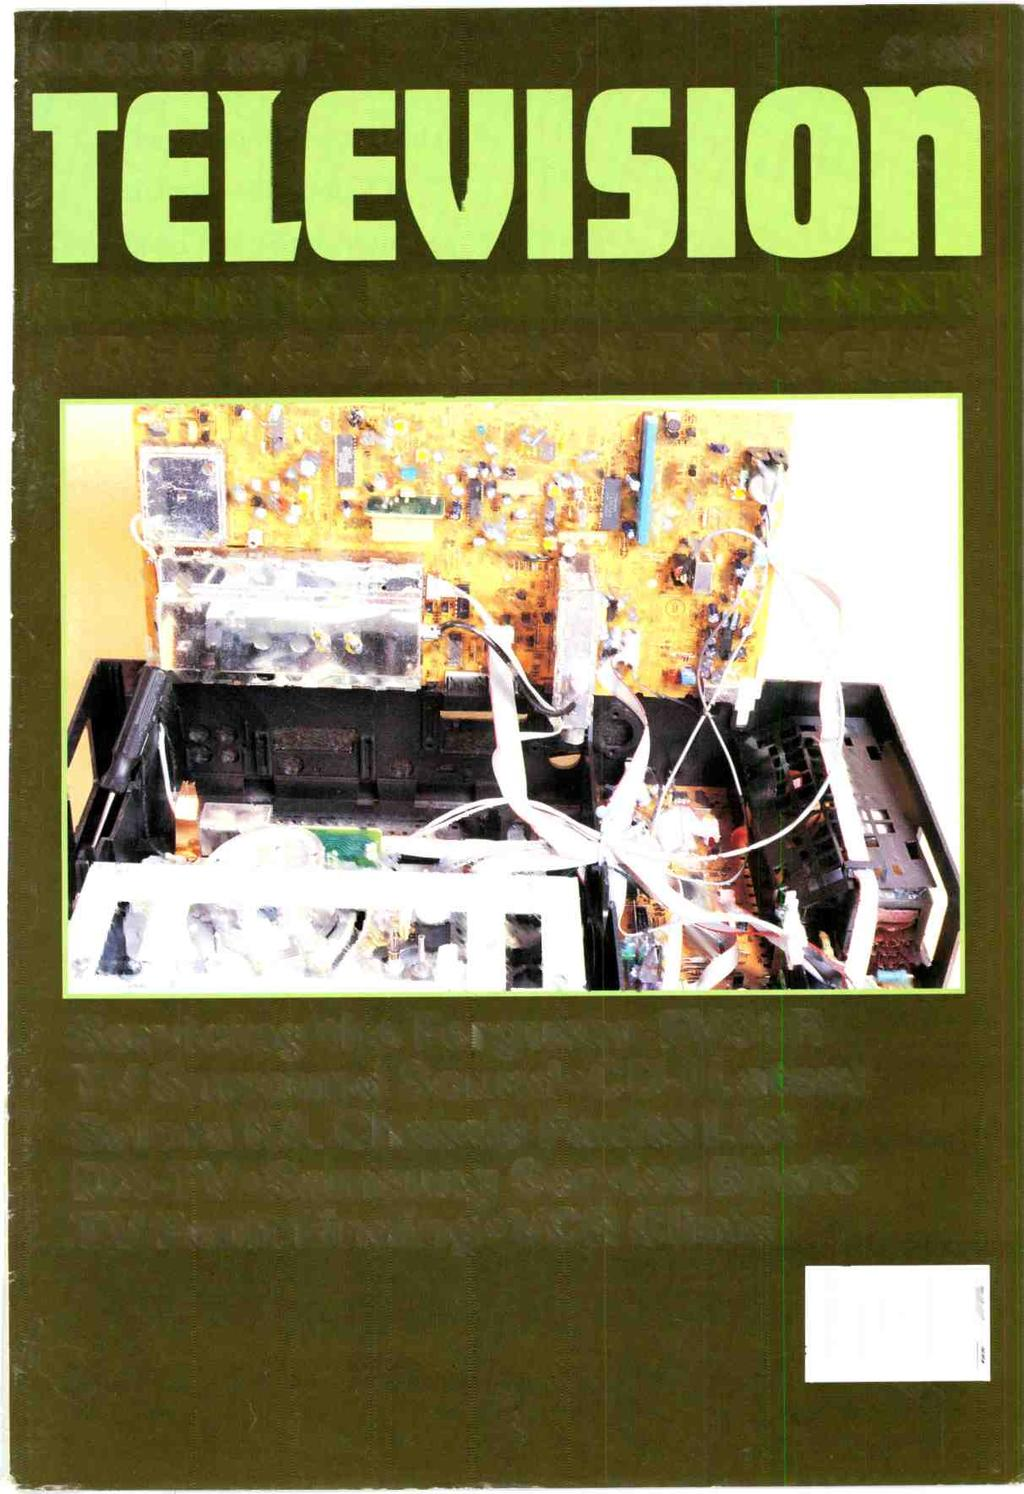 Tfieuision Servicingprwectsvideodevelopments Free 16 Page Catalogue Download Tda7294 Ic Second Voice Recorder Module And Service Manual Schematics Datasheets Eeprom Bins Pcb 1 August Servicing The Ferguson Fv31 R Tv Surround Soundcd I Latest Salora K L Chassis